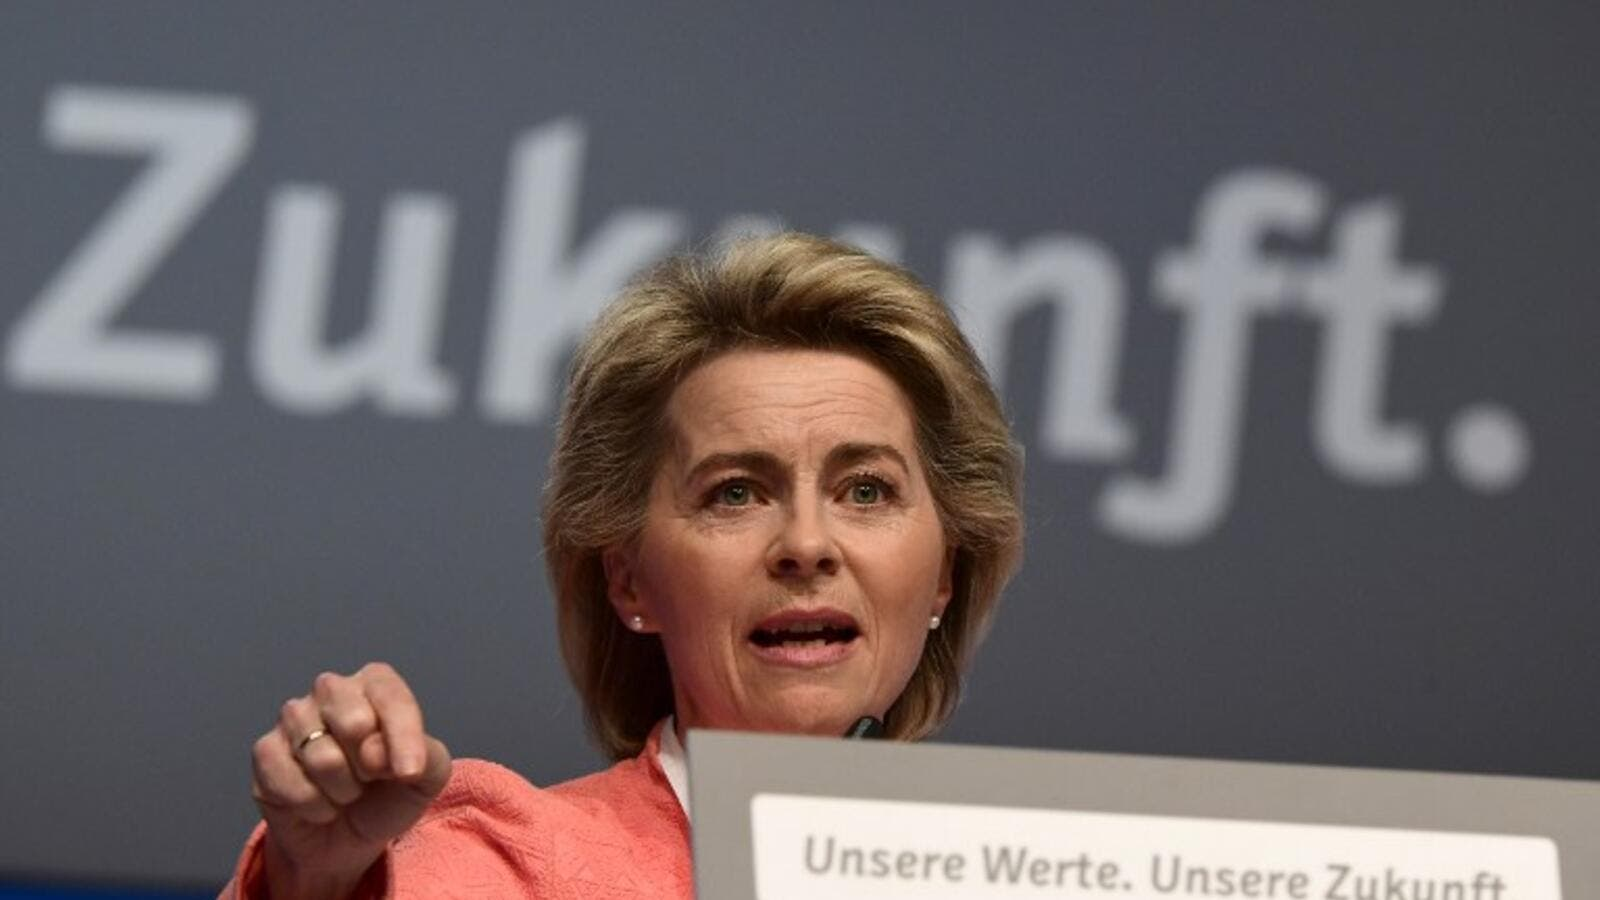 Von der Leyen speaks at her party's conference last week (Tobias Schwarz/AFP)